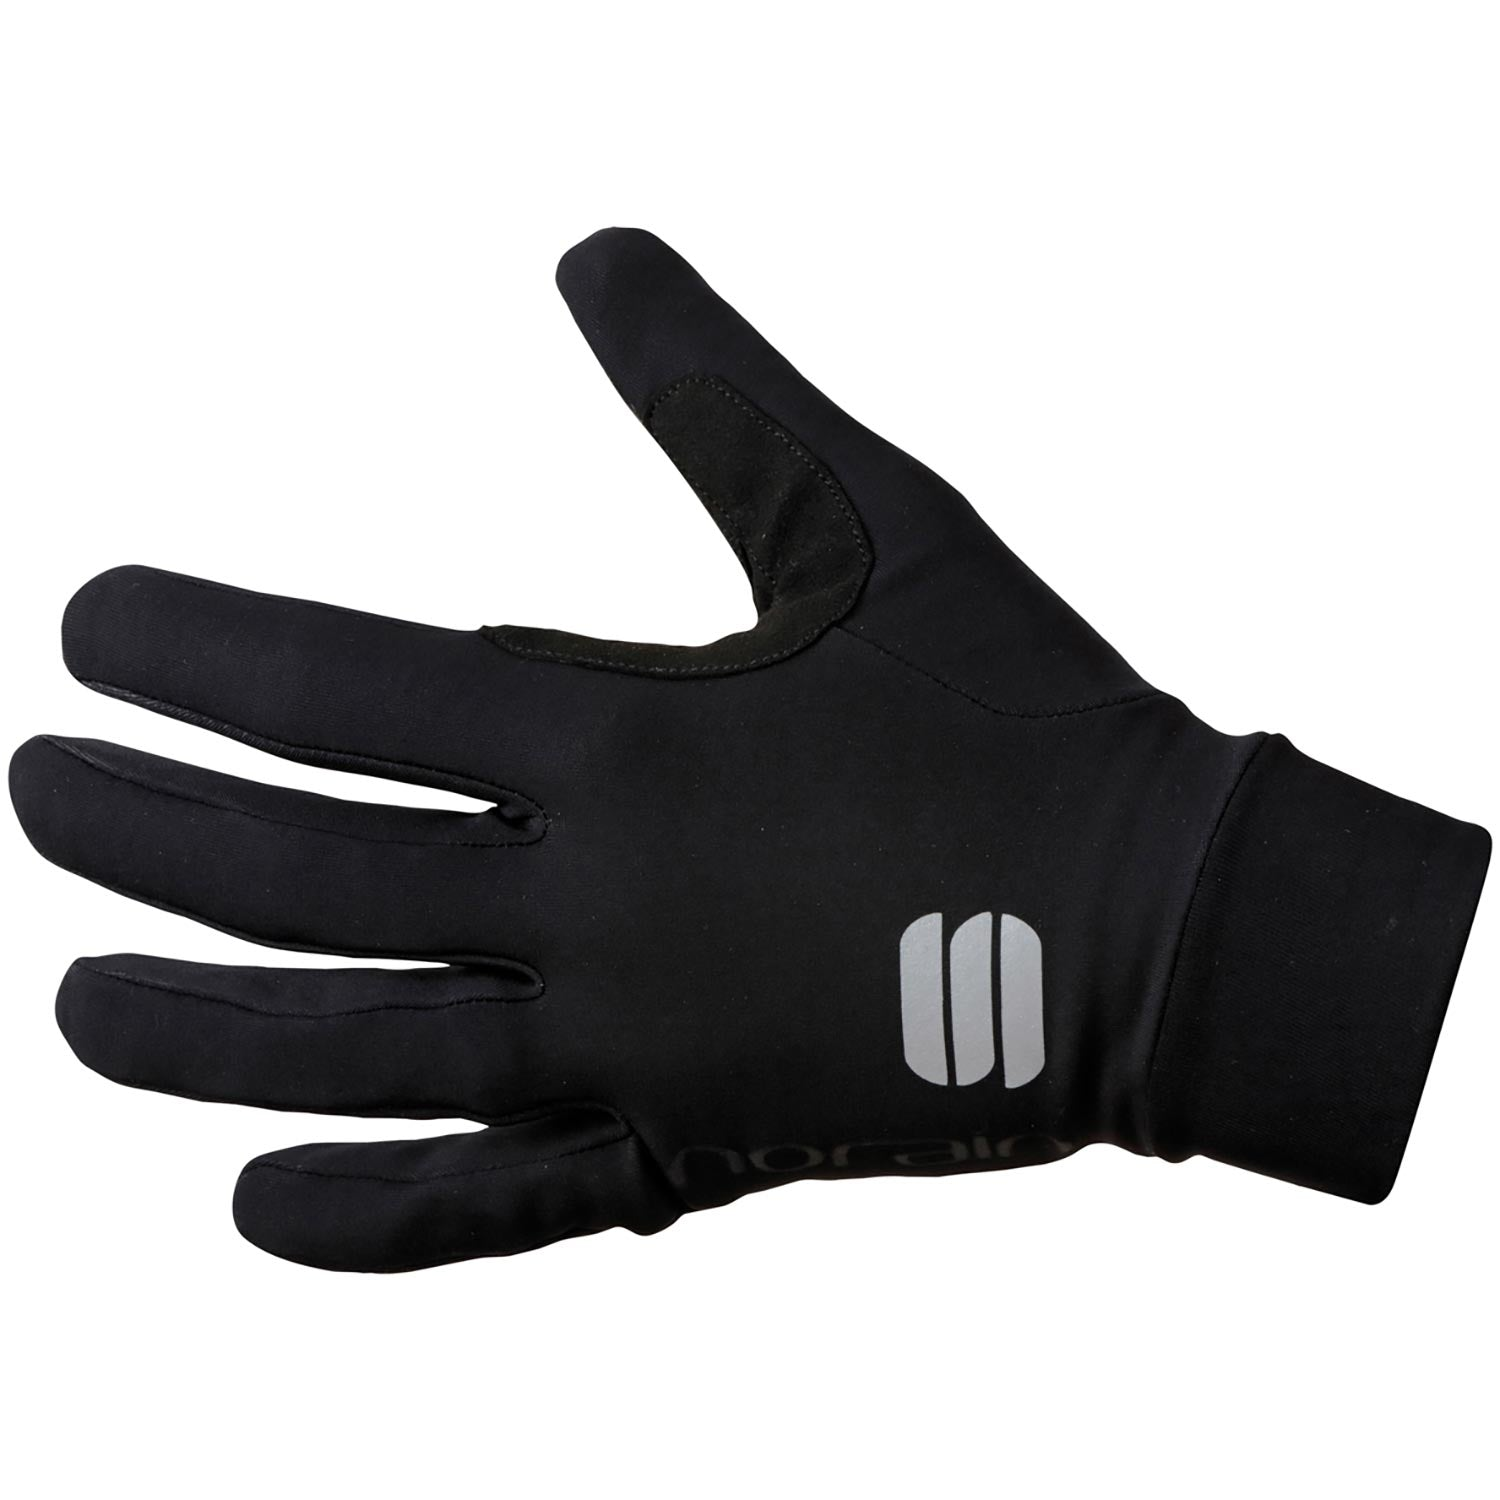 Sportful-Sportful NoRain Gloves-Black-XS-SF019700021-saddleback-elite-performance-cycling